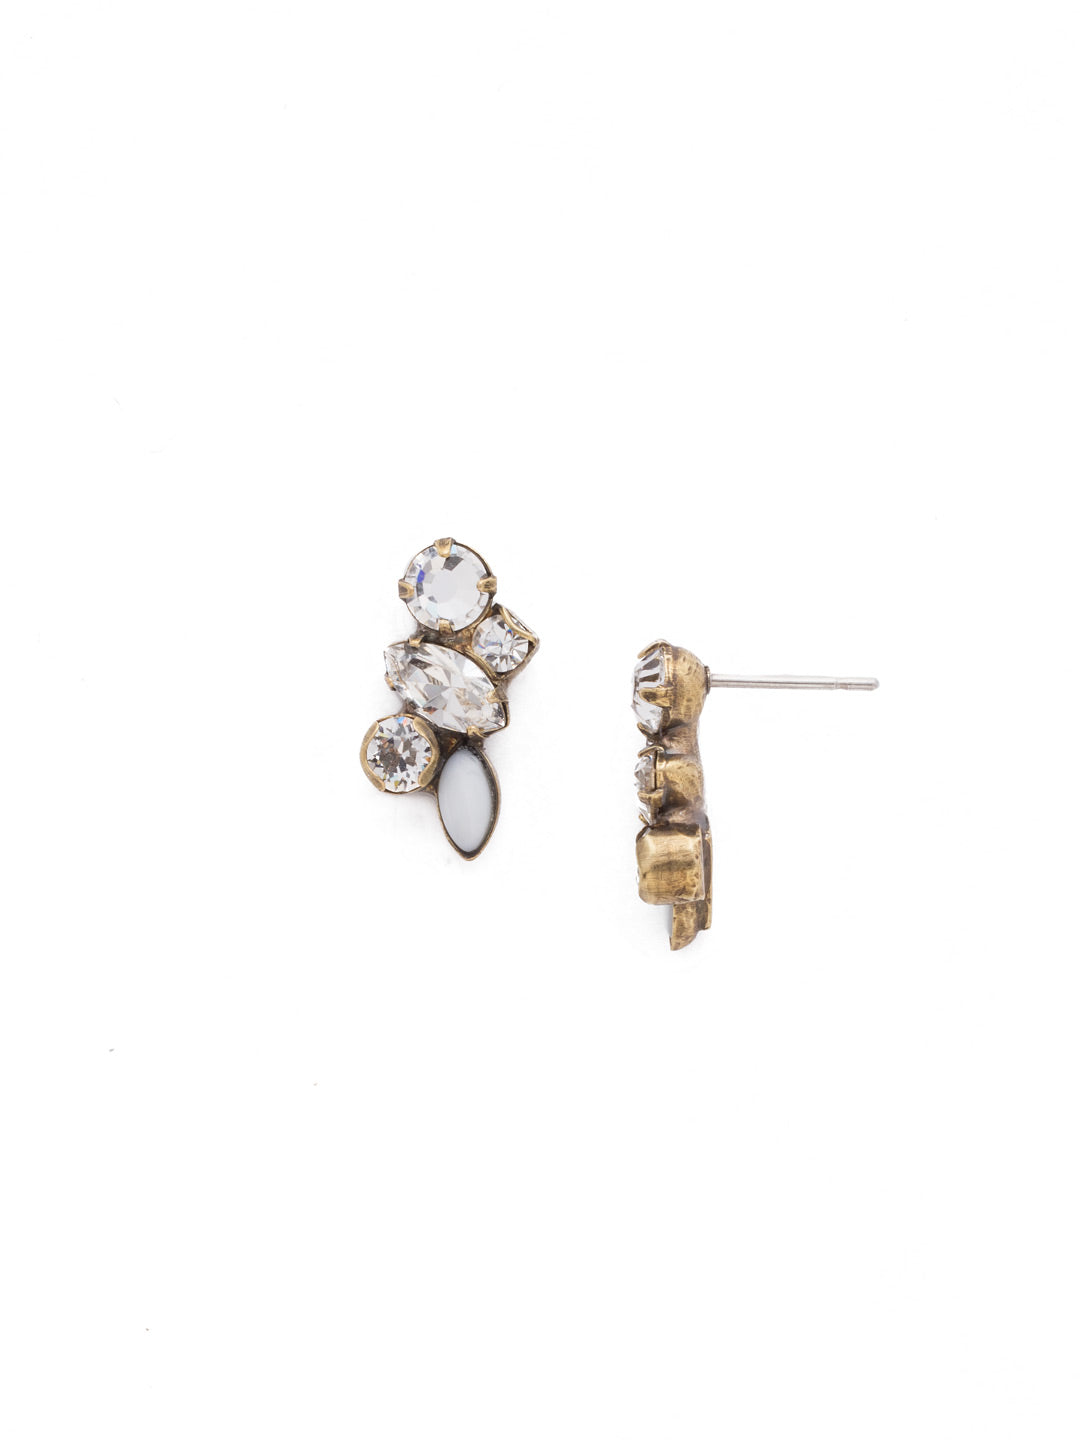 Petite Crystal Cluster Post Earrings - EDG5AGCRY